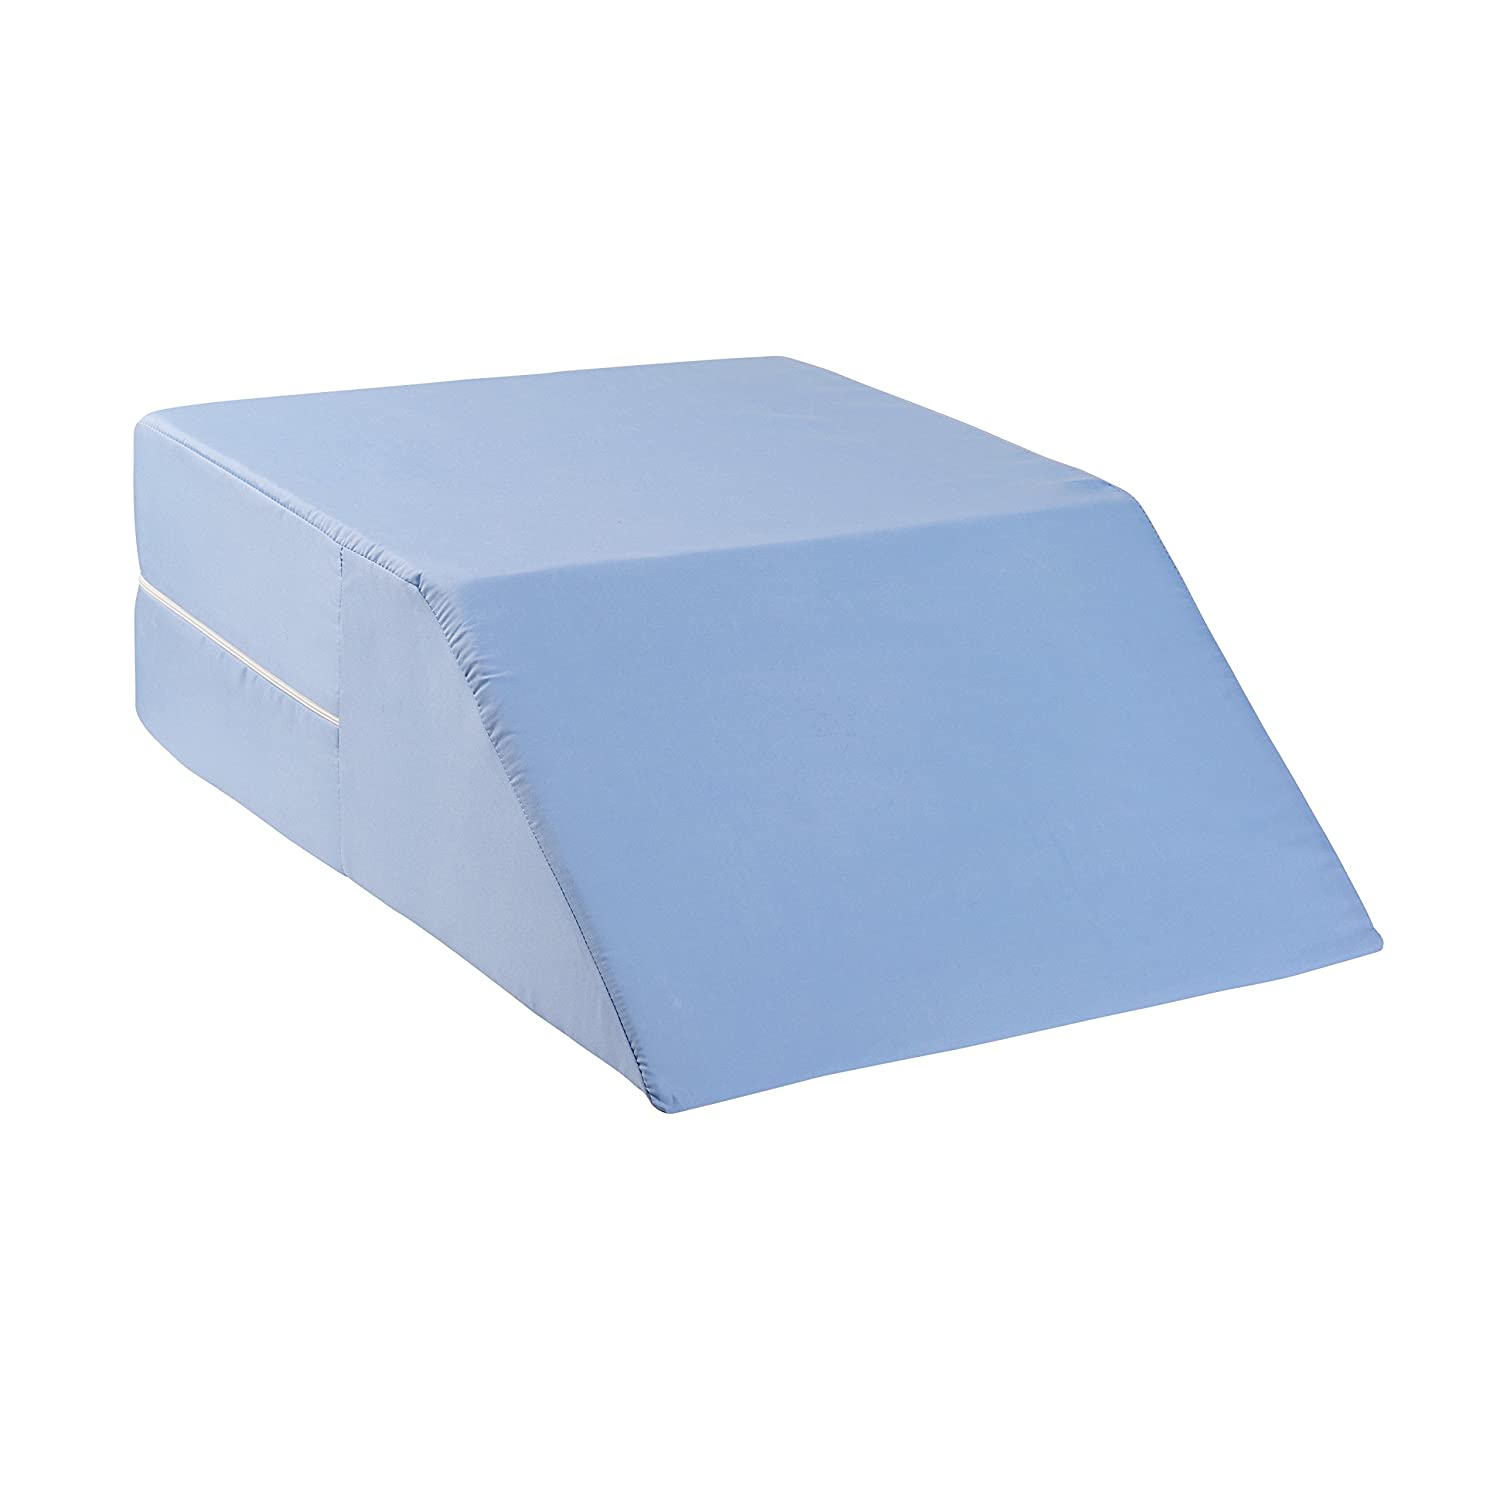 Dmi Ortho Bed Wedge Foam Leg Rest Cushion 6 X 20 Beng Share It Pouch 95 Gr 10 Pcs 24 Blue Health Personal Care